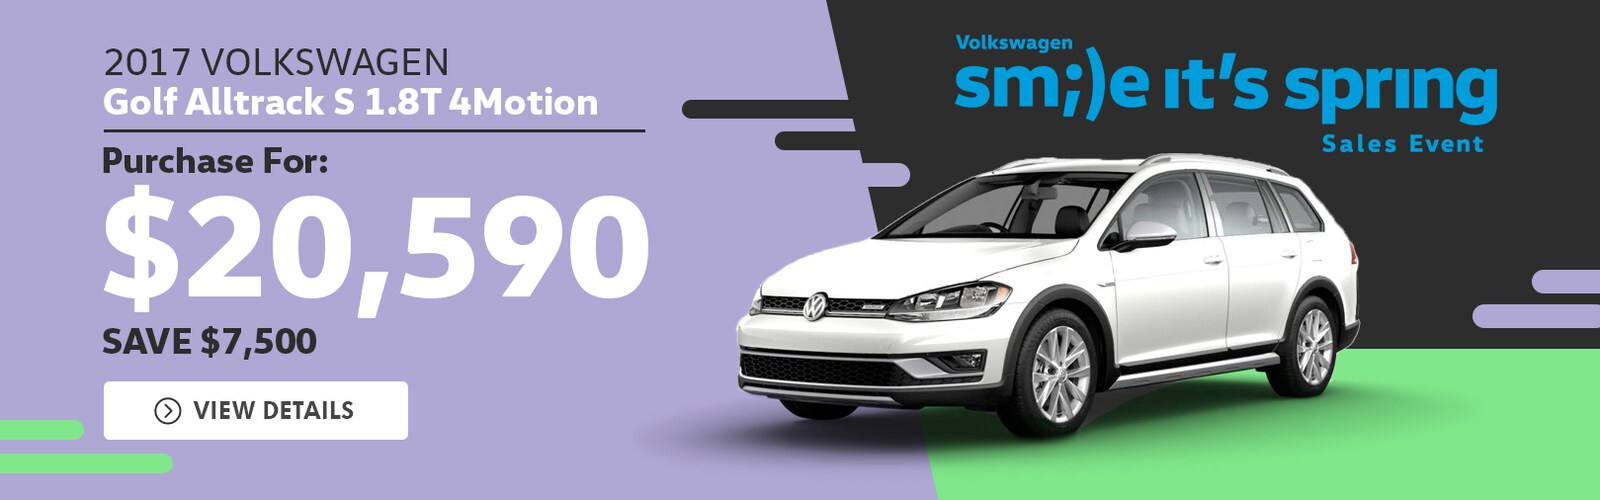 Where To Find Dealer Invoice Price Readandshareclub Volkswagen - Vw alltrack invoice price